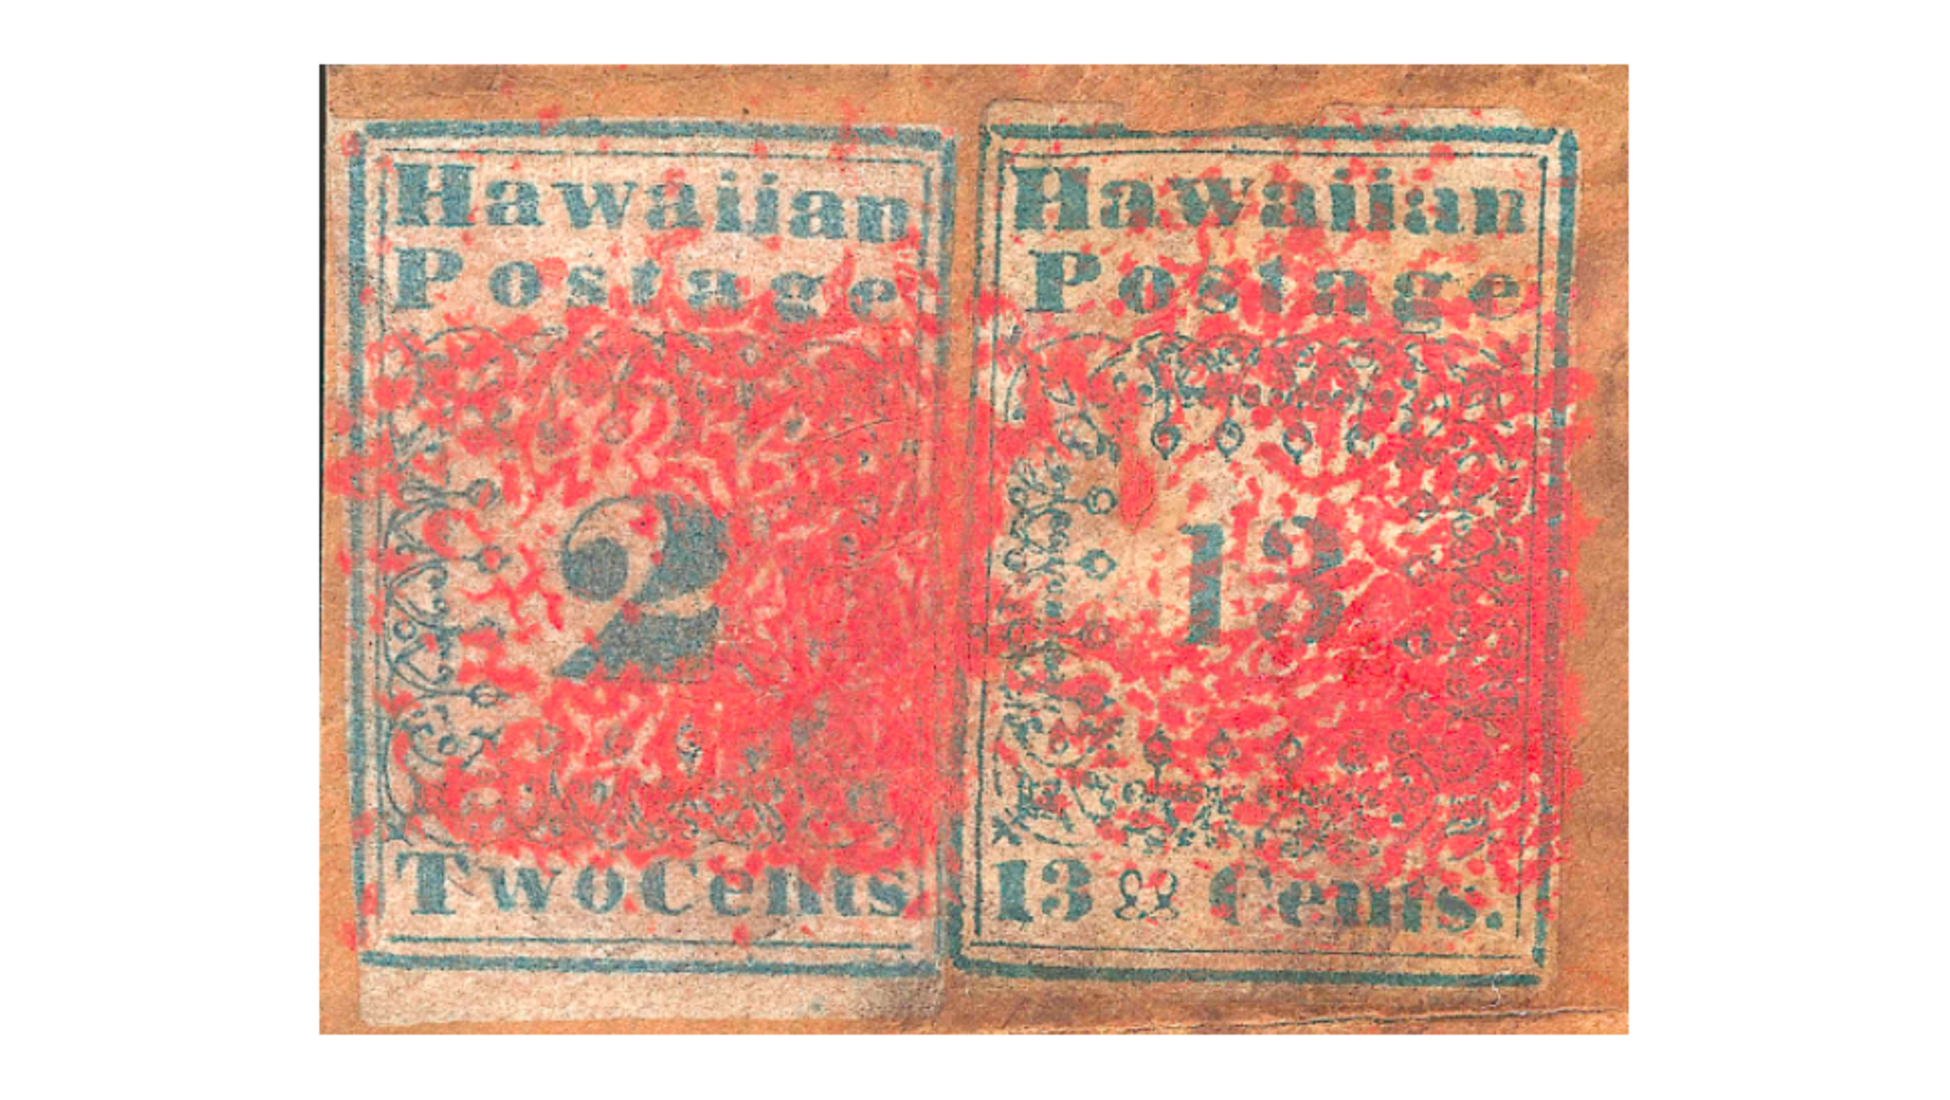 The top 10 most expensive stamps in the world - Catawiki